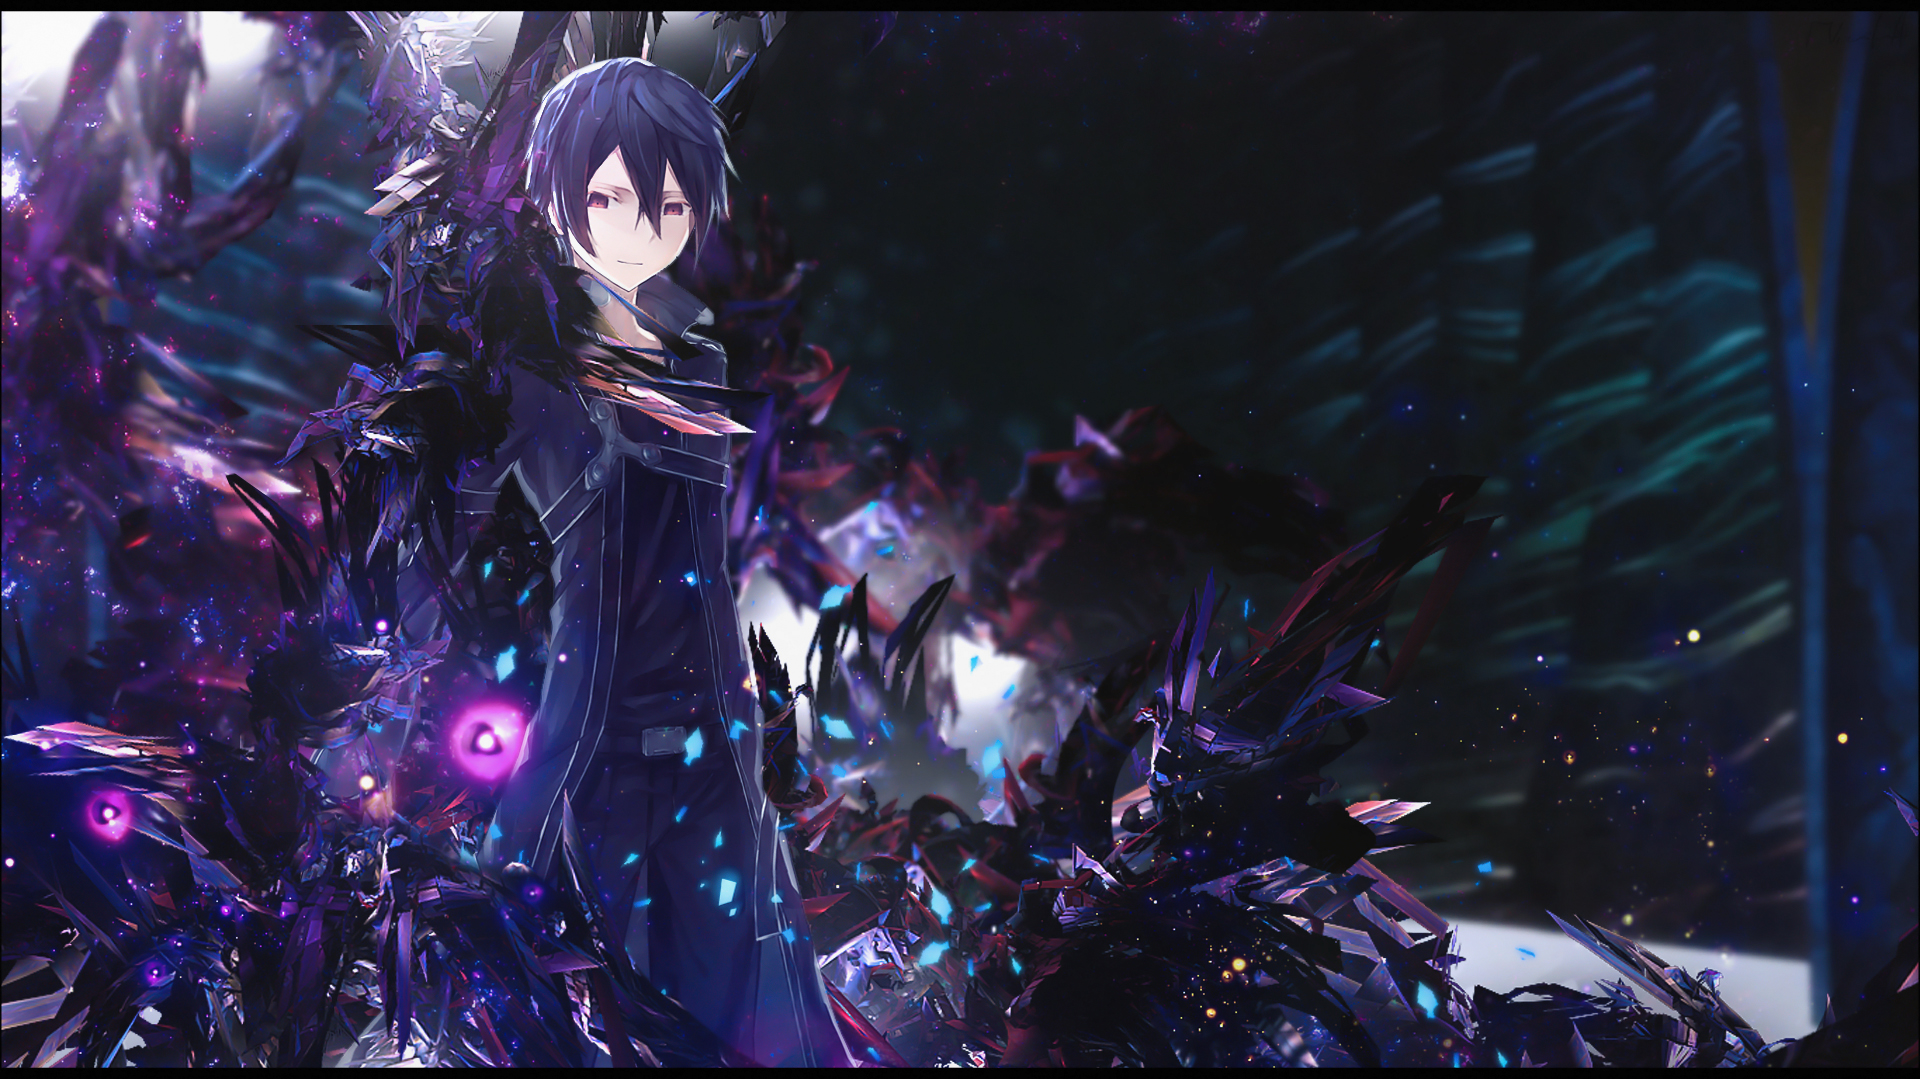 Sword Art Online Background: Sword Art Online Wallpaper By Greev On DeviantArt